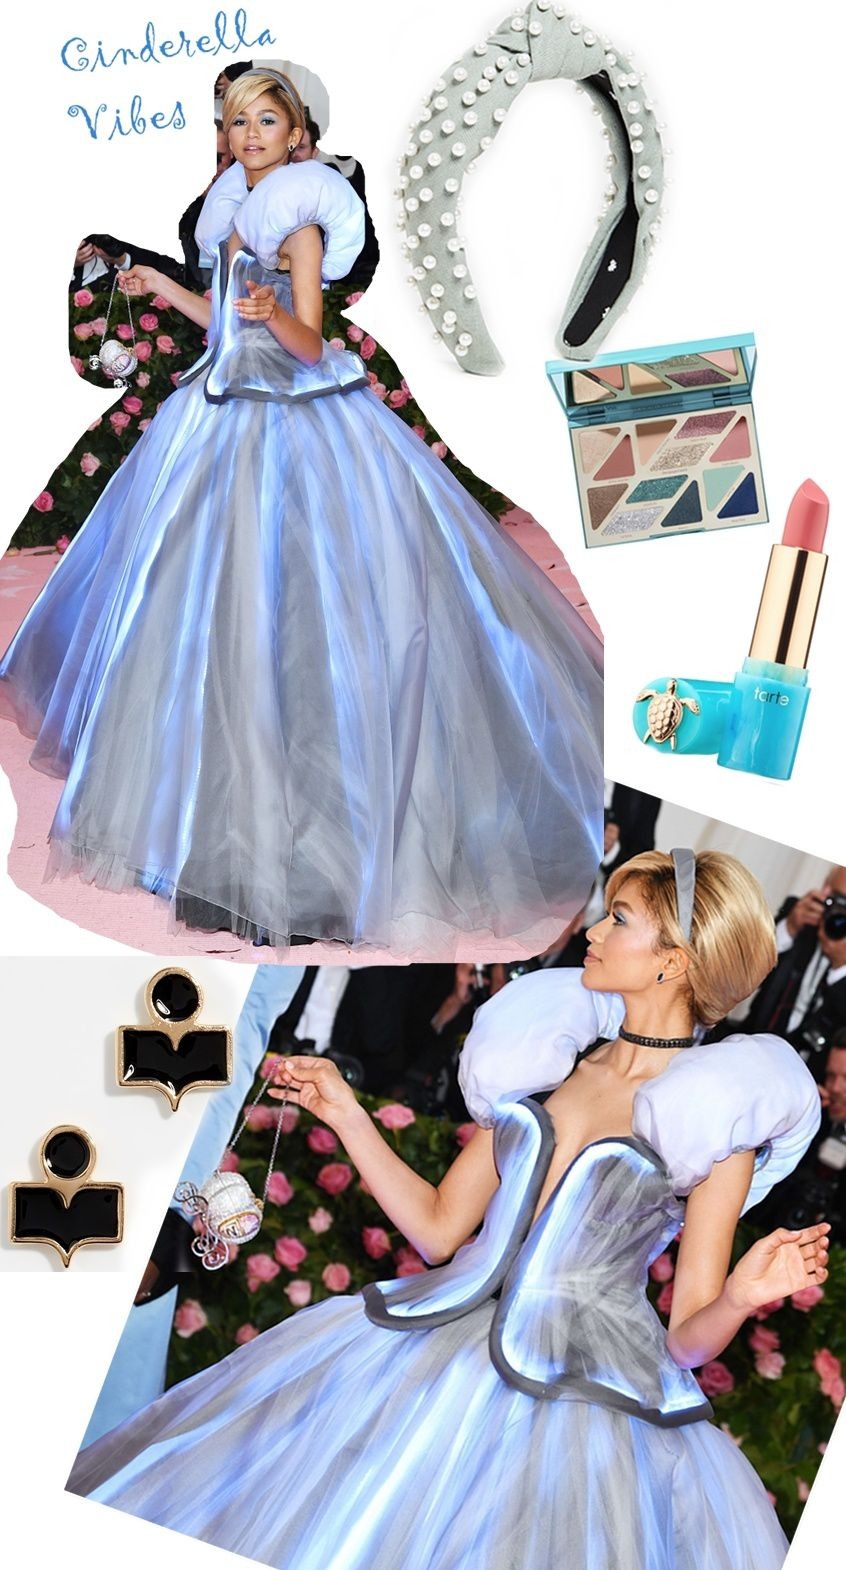 How to Channel Zendaya's Cinderella Vibes from the Met Gala!